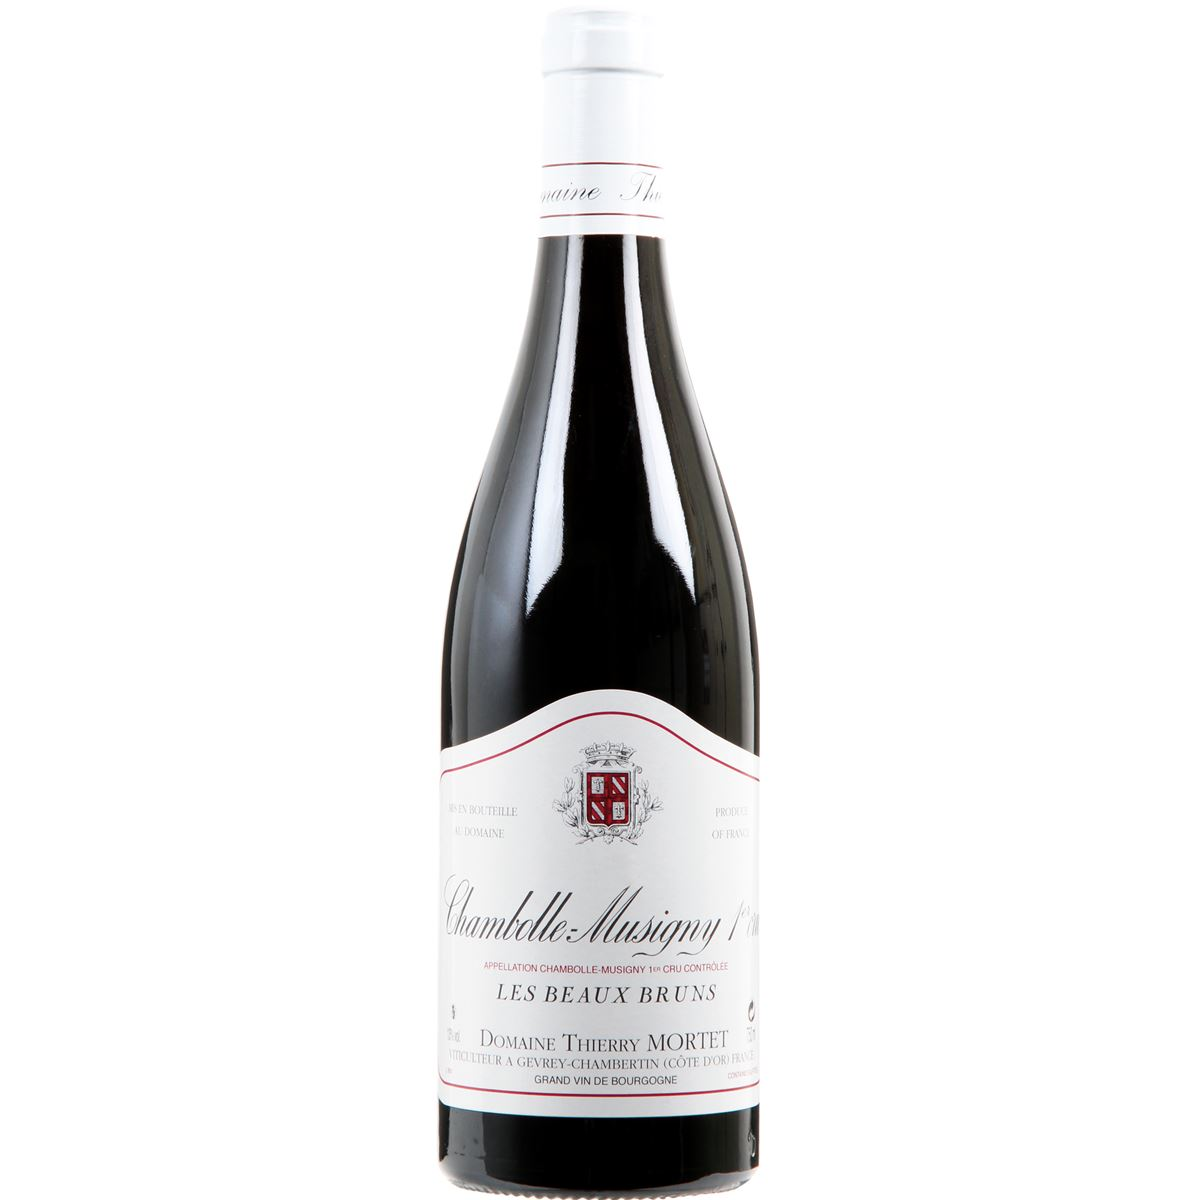 Vino rosso Chambolle-Musigny Les Beaux Bruns Premier Cru